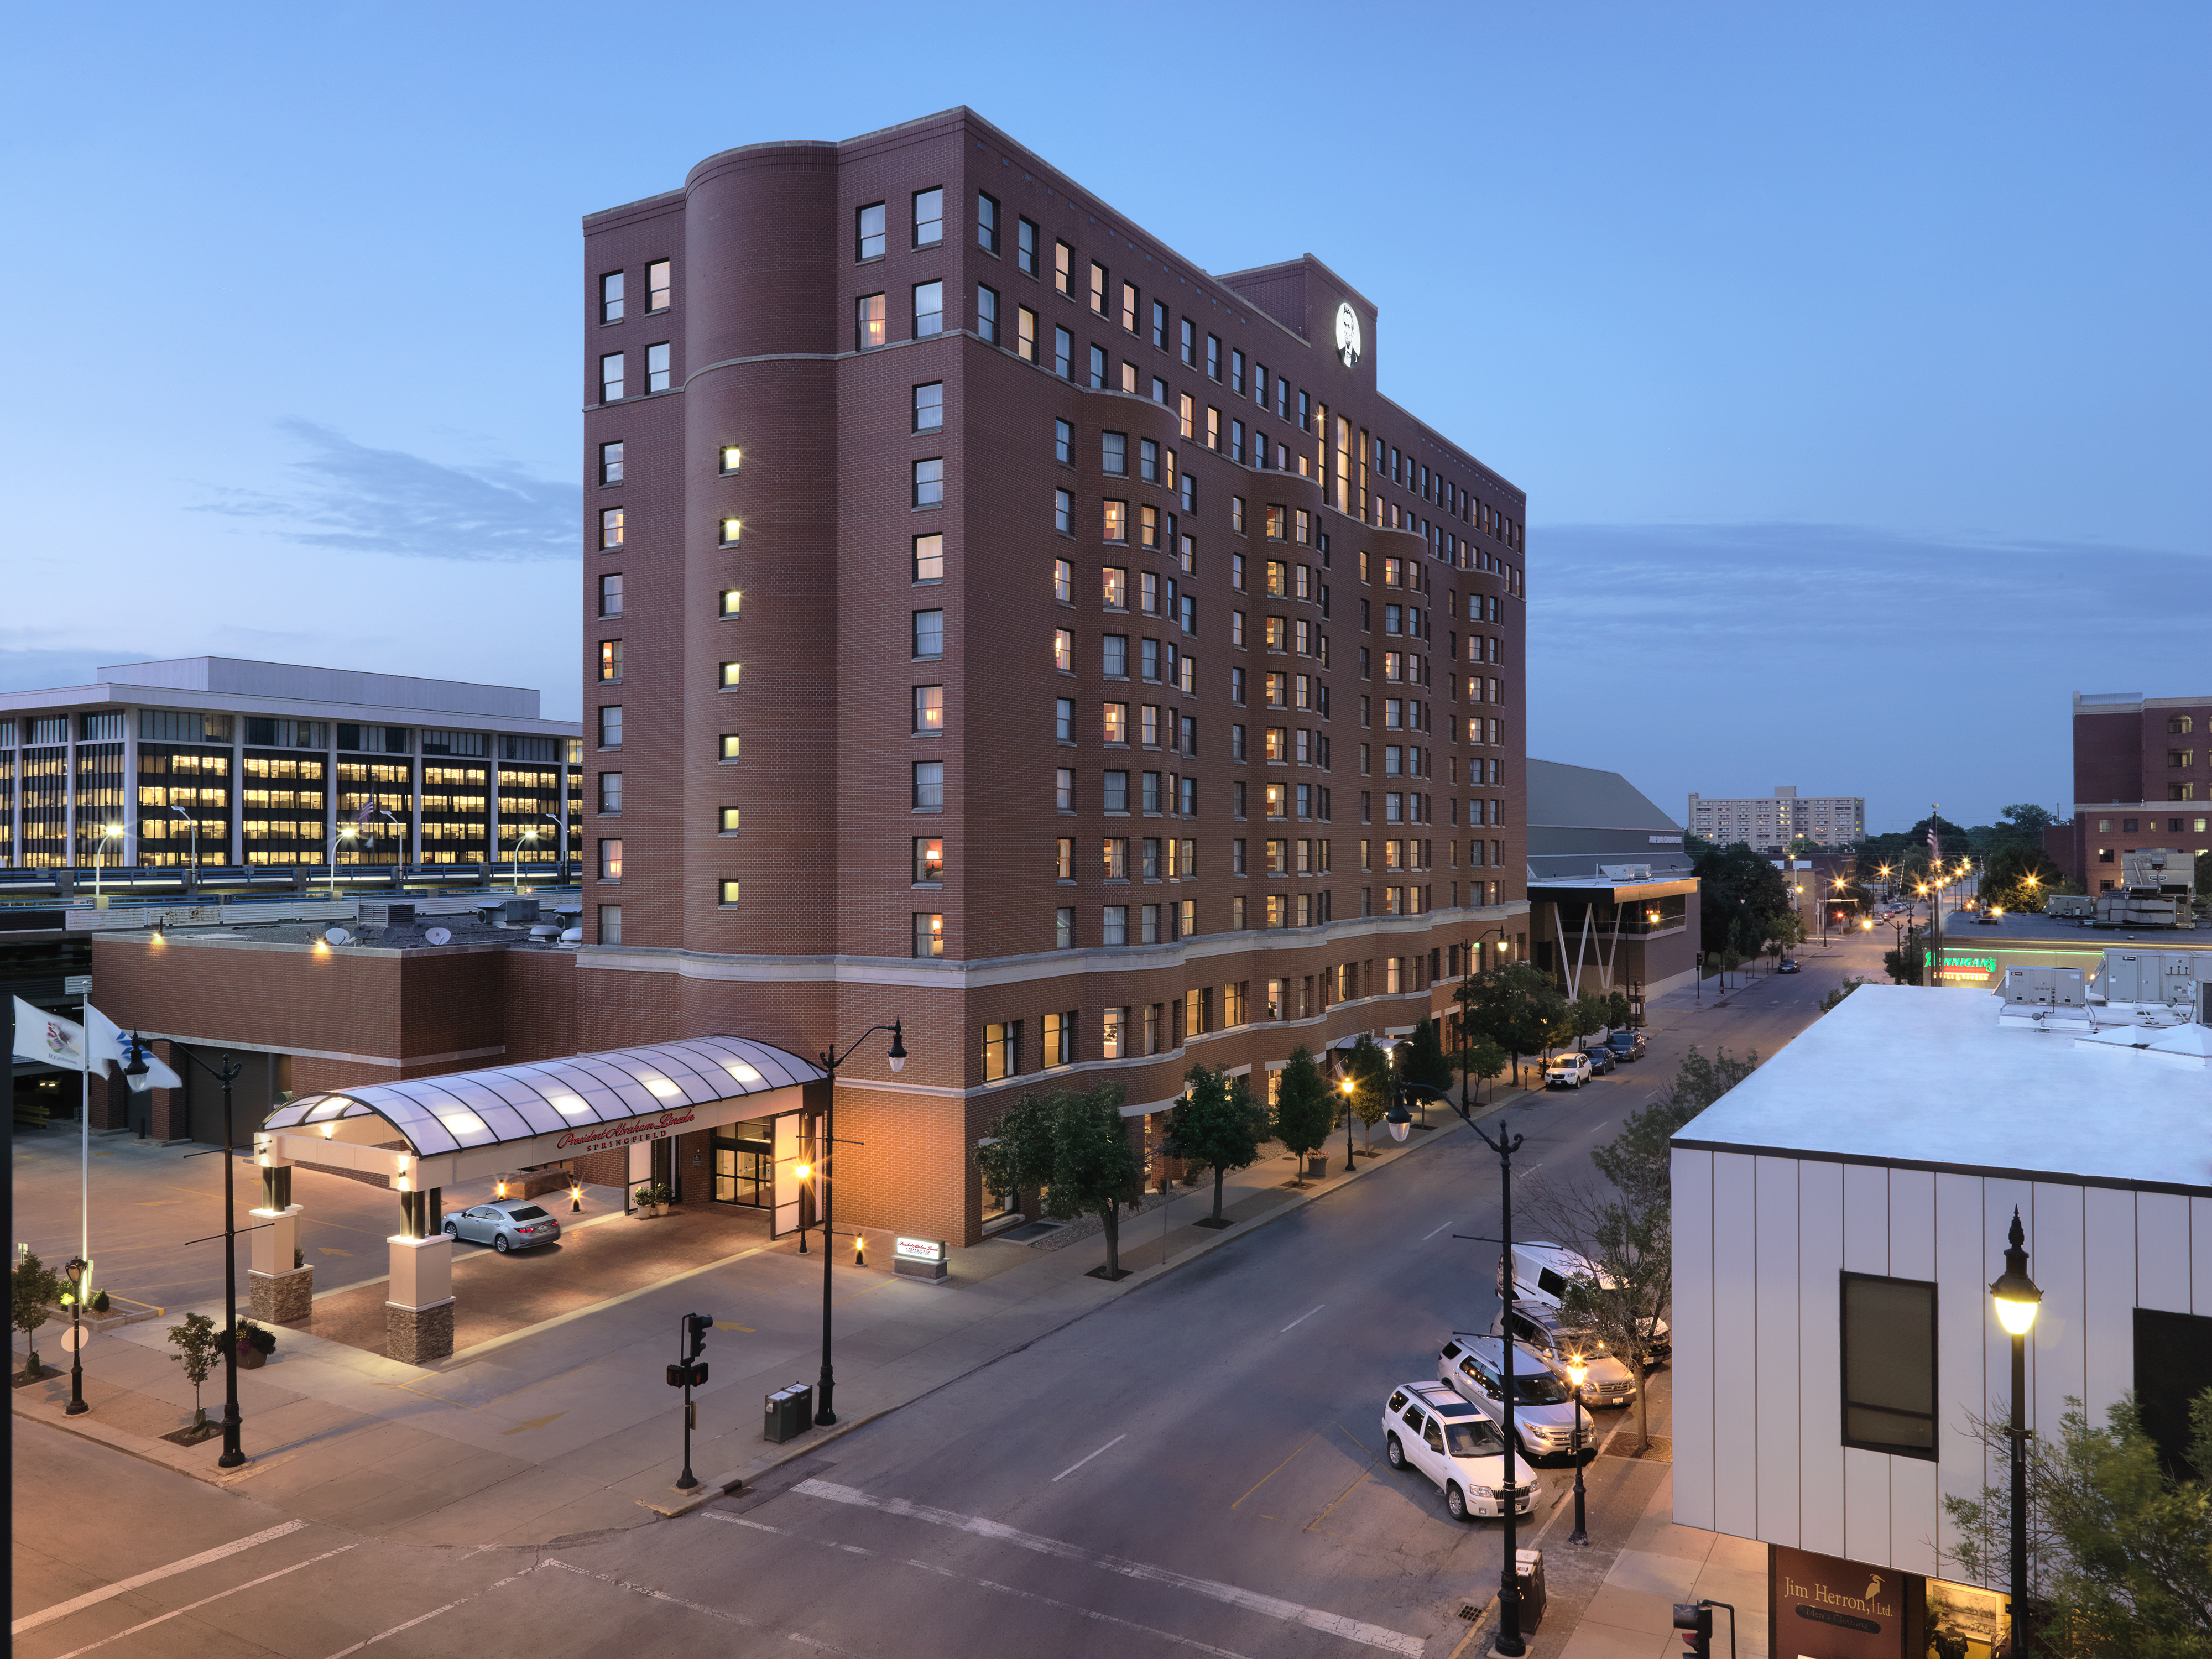 President Abraham Lincoln Springfield- a DoubleTree by Hilton Hotel